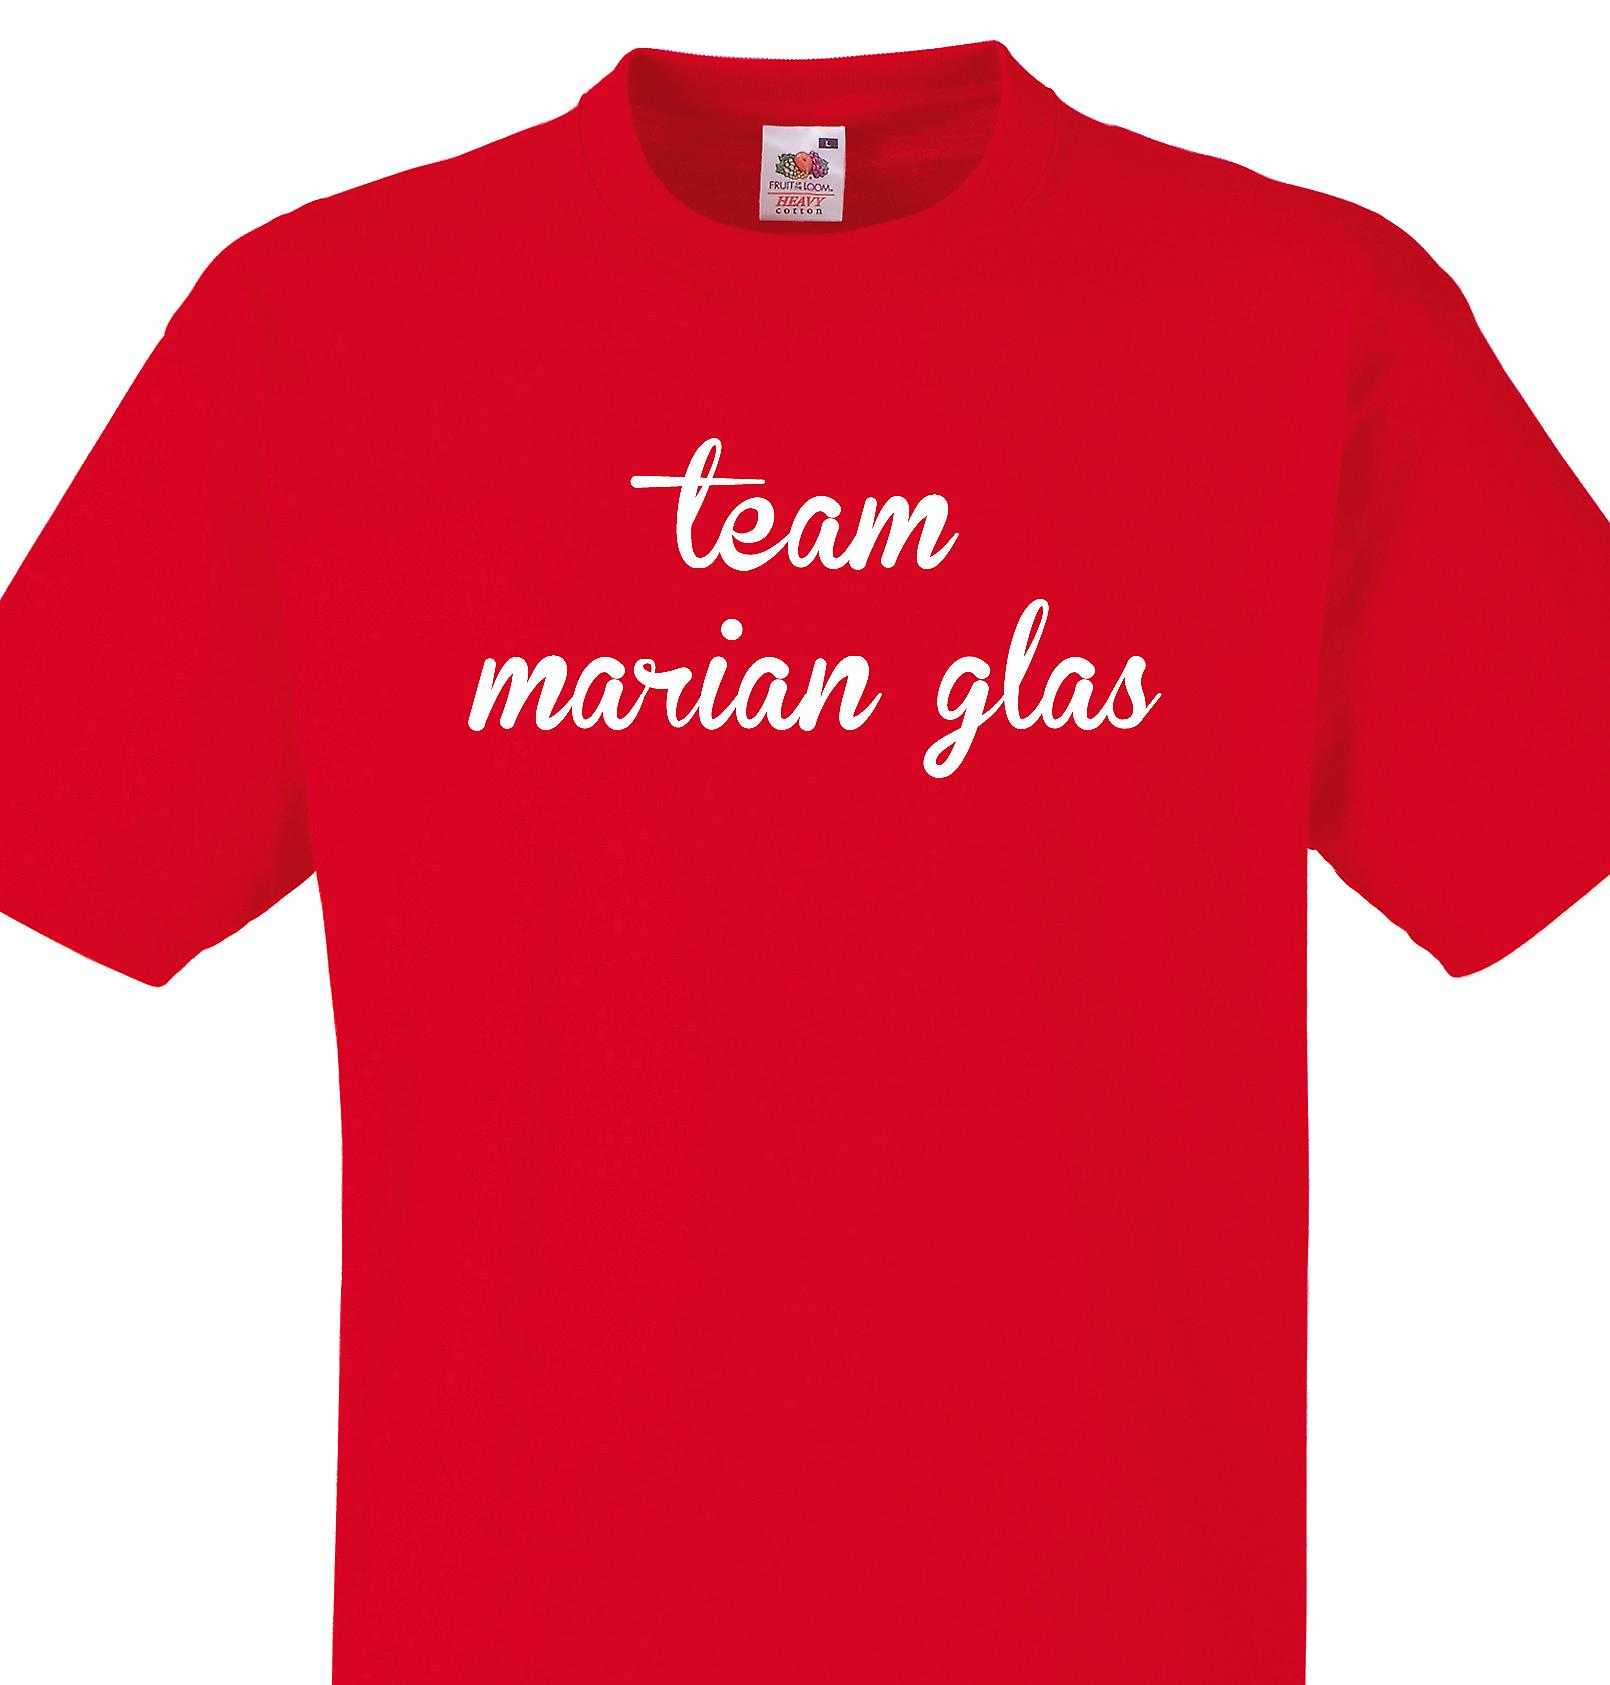 Team Marian glas Red T shirt